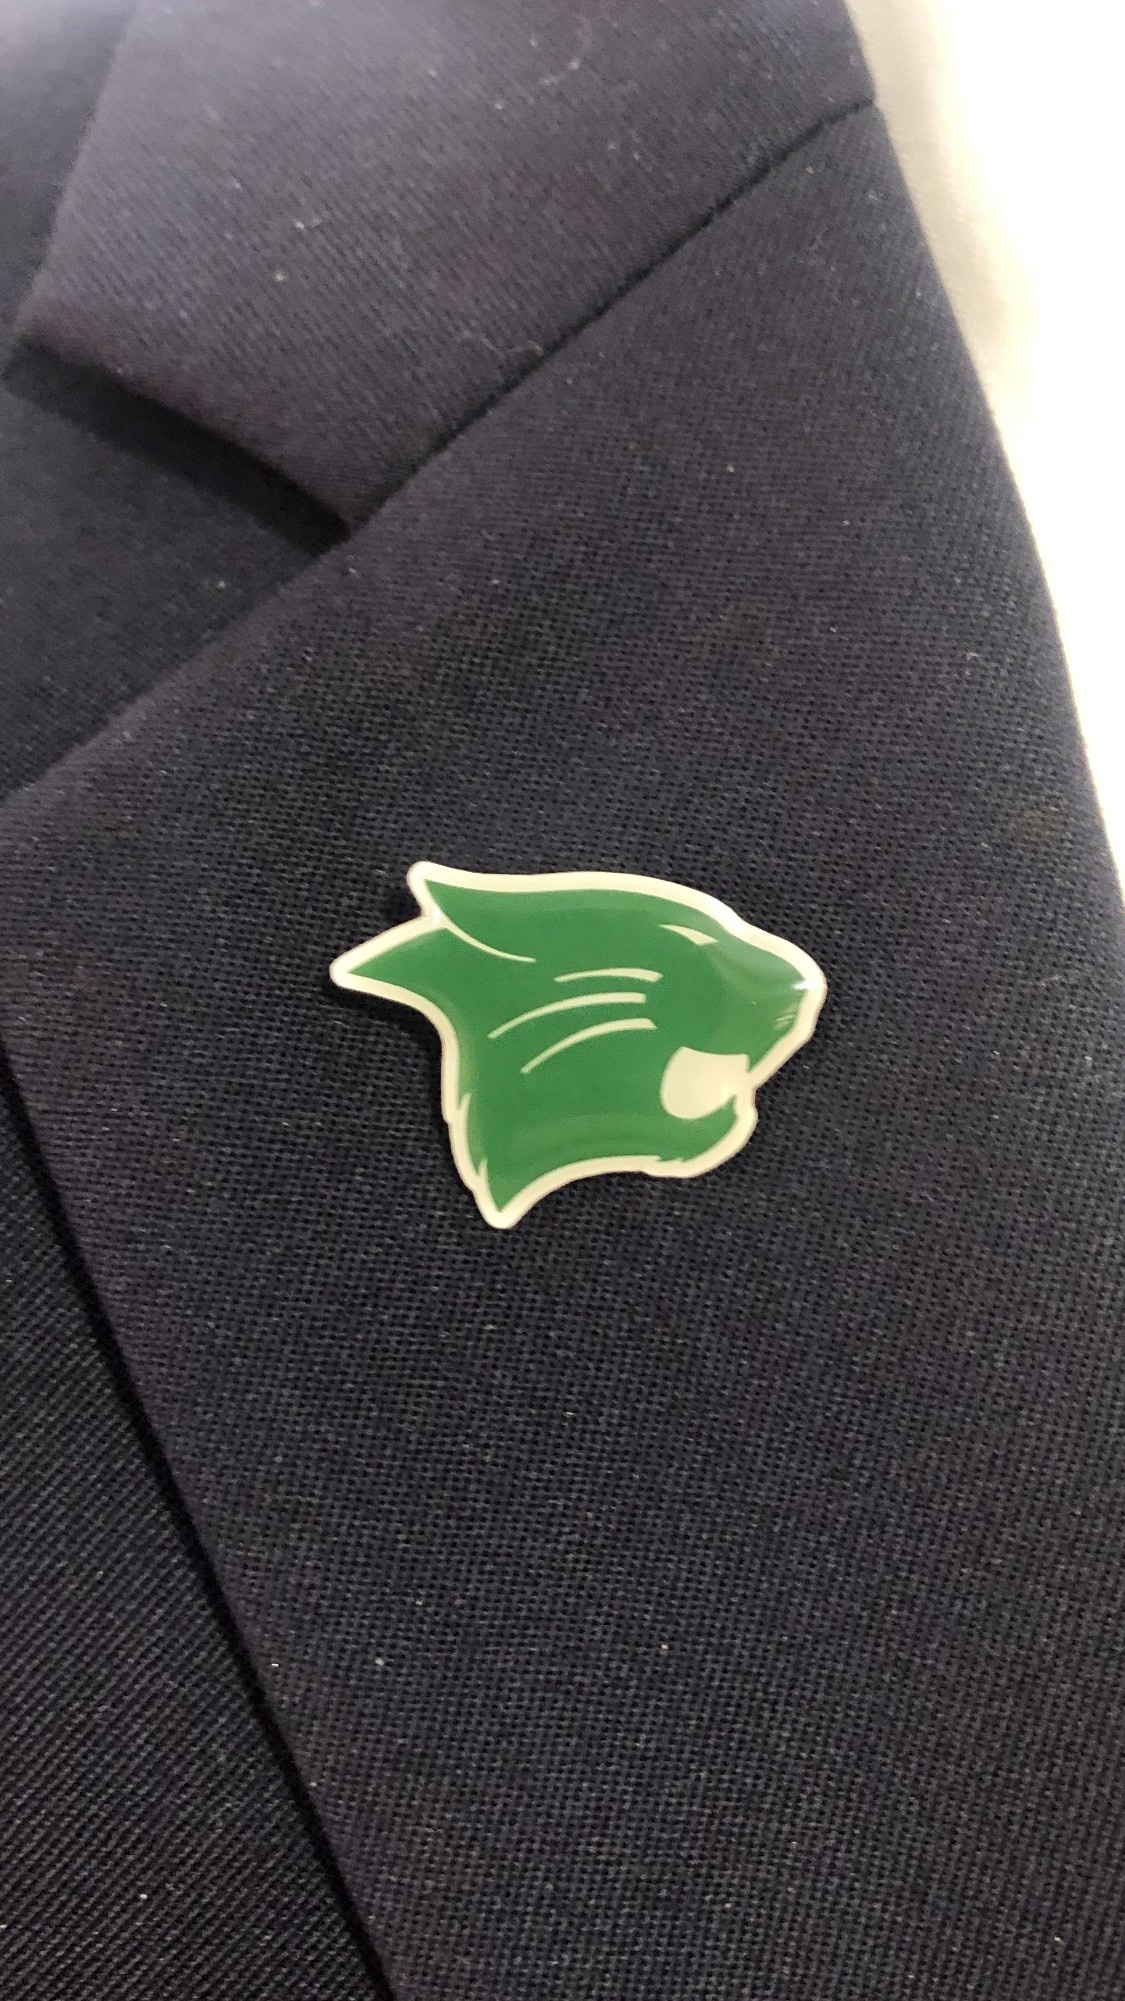 Lapel Pin: Westminster Wildcat Head